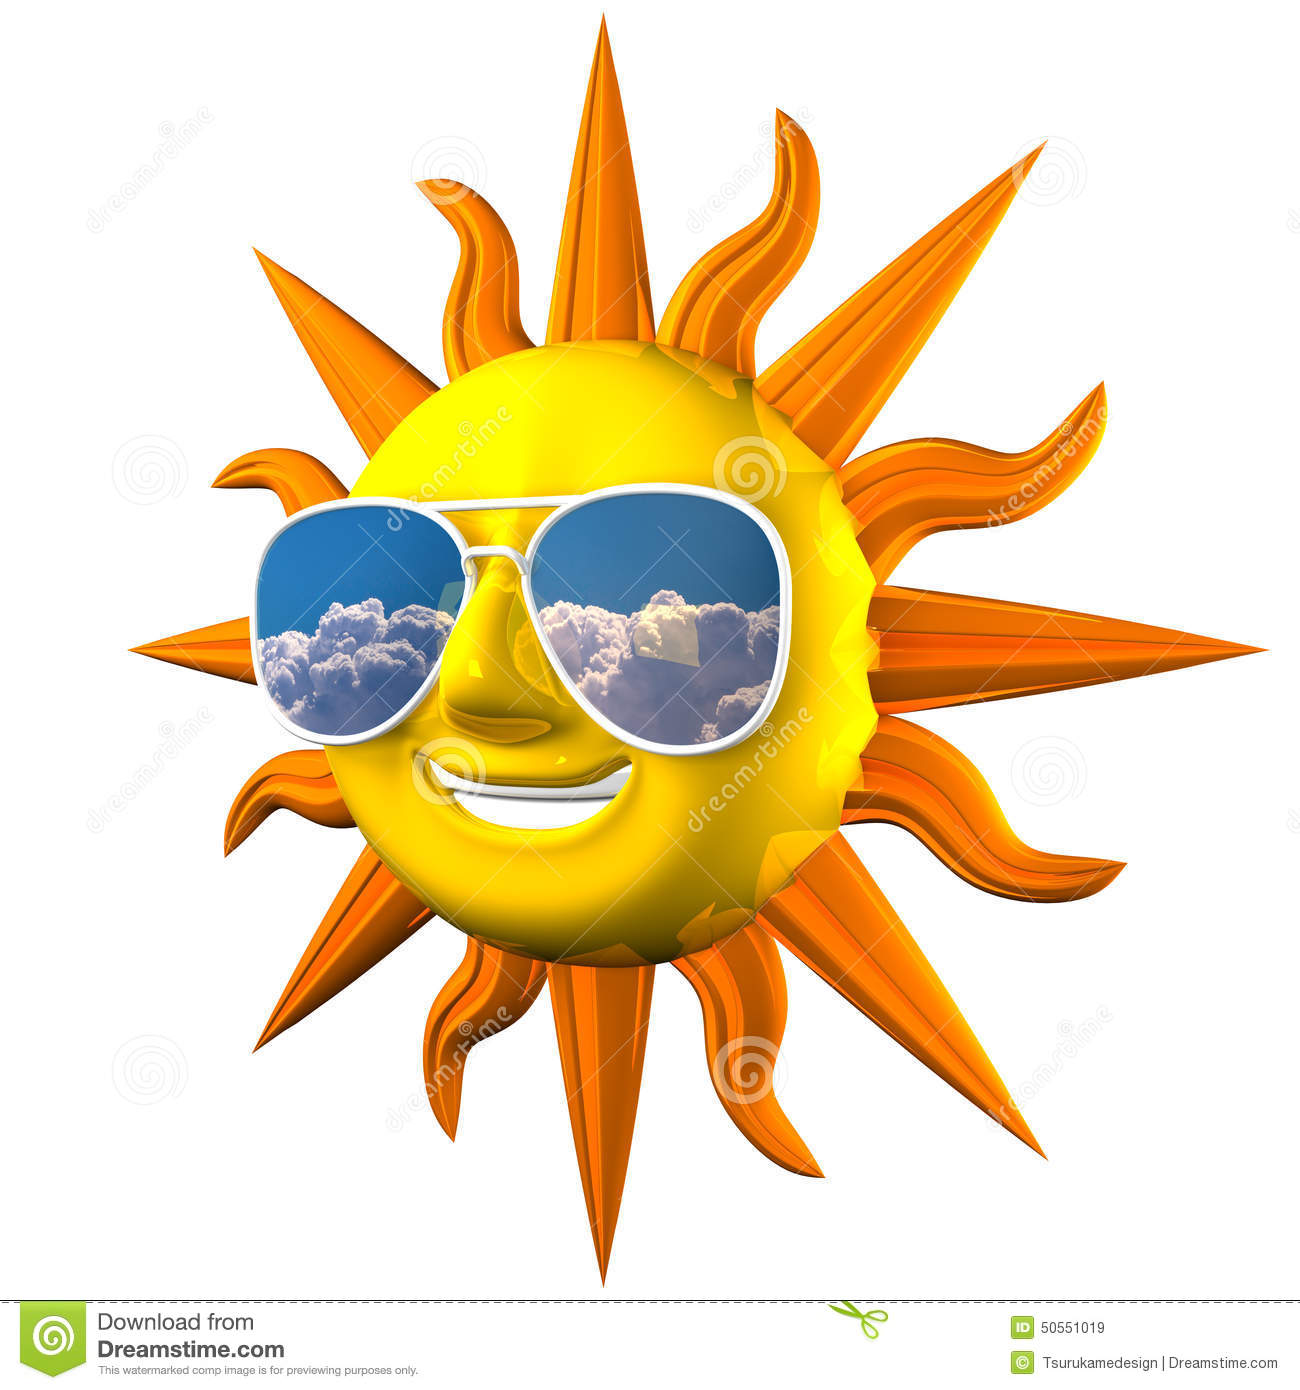 Smiling sun with sunglasses - Royalty Free Illustration Download Smiling Sun With Sunglasses